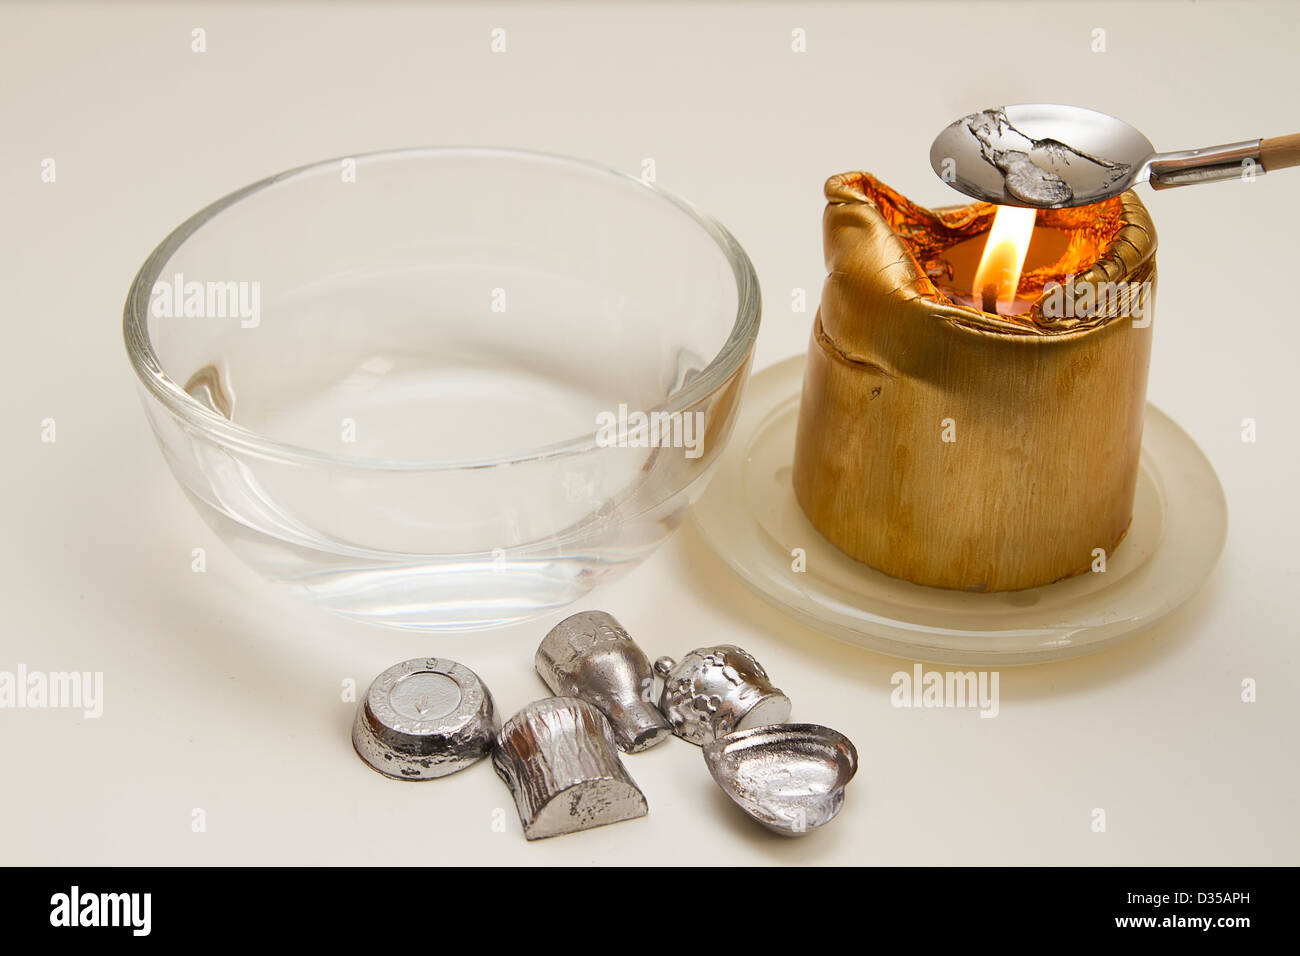 New year tradition melting lead - Stock Image